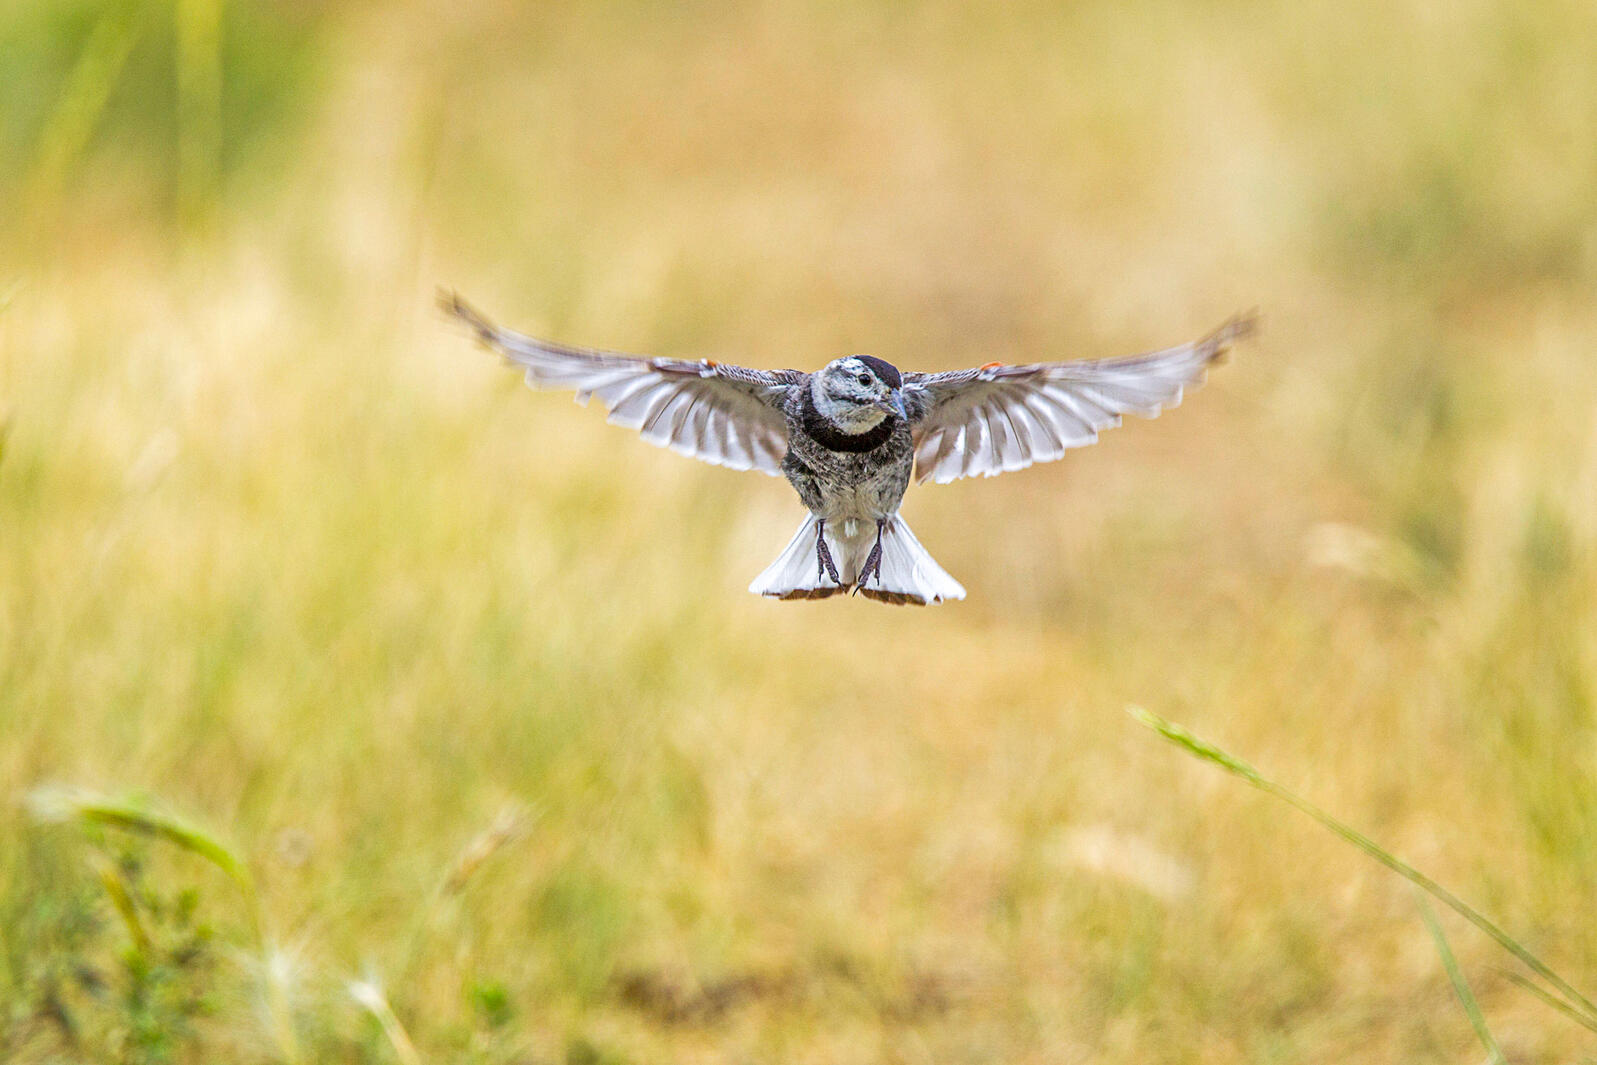 Thick-billed (formerly McCown's) Longspur. Rick & Nora Bowers/Alamy